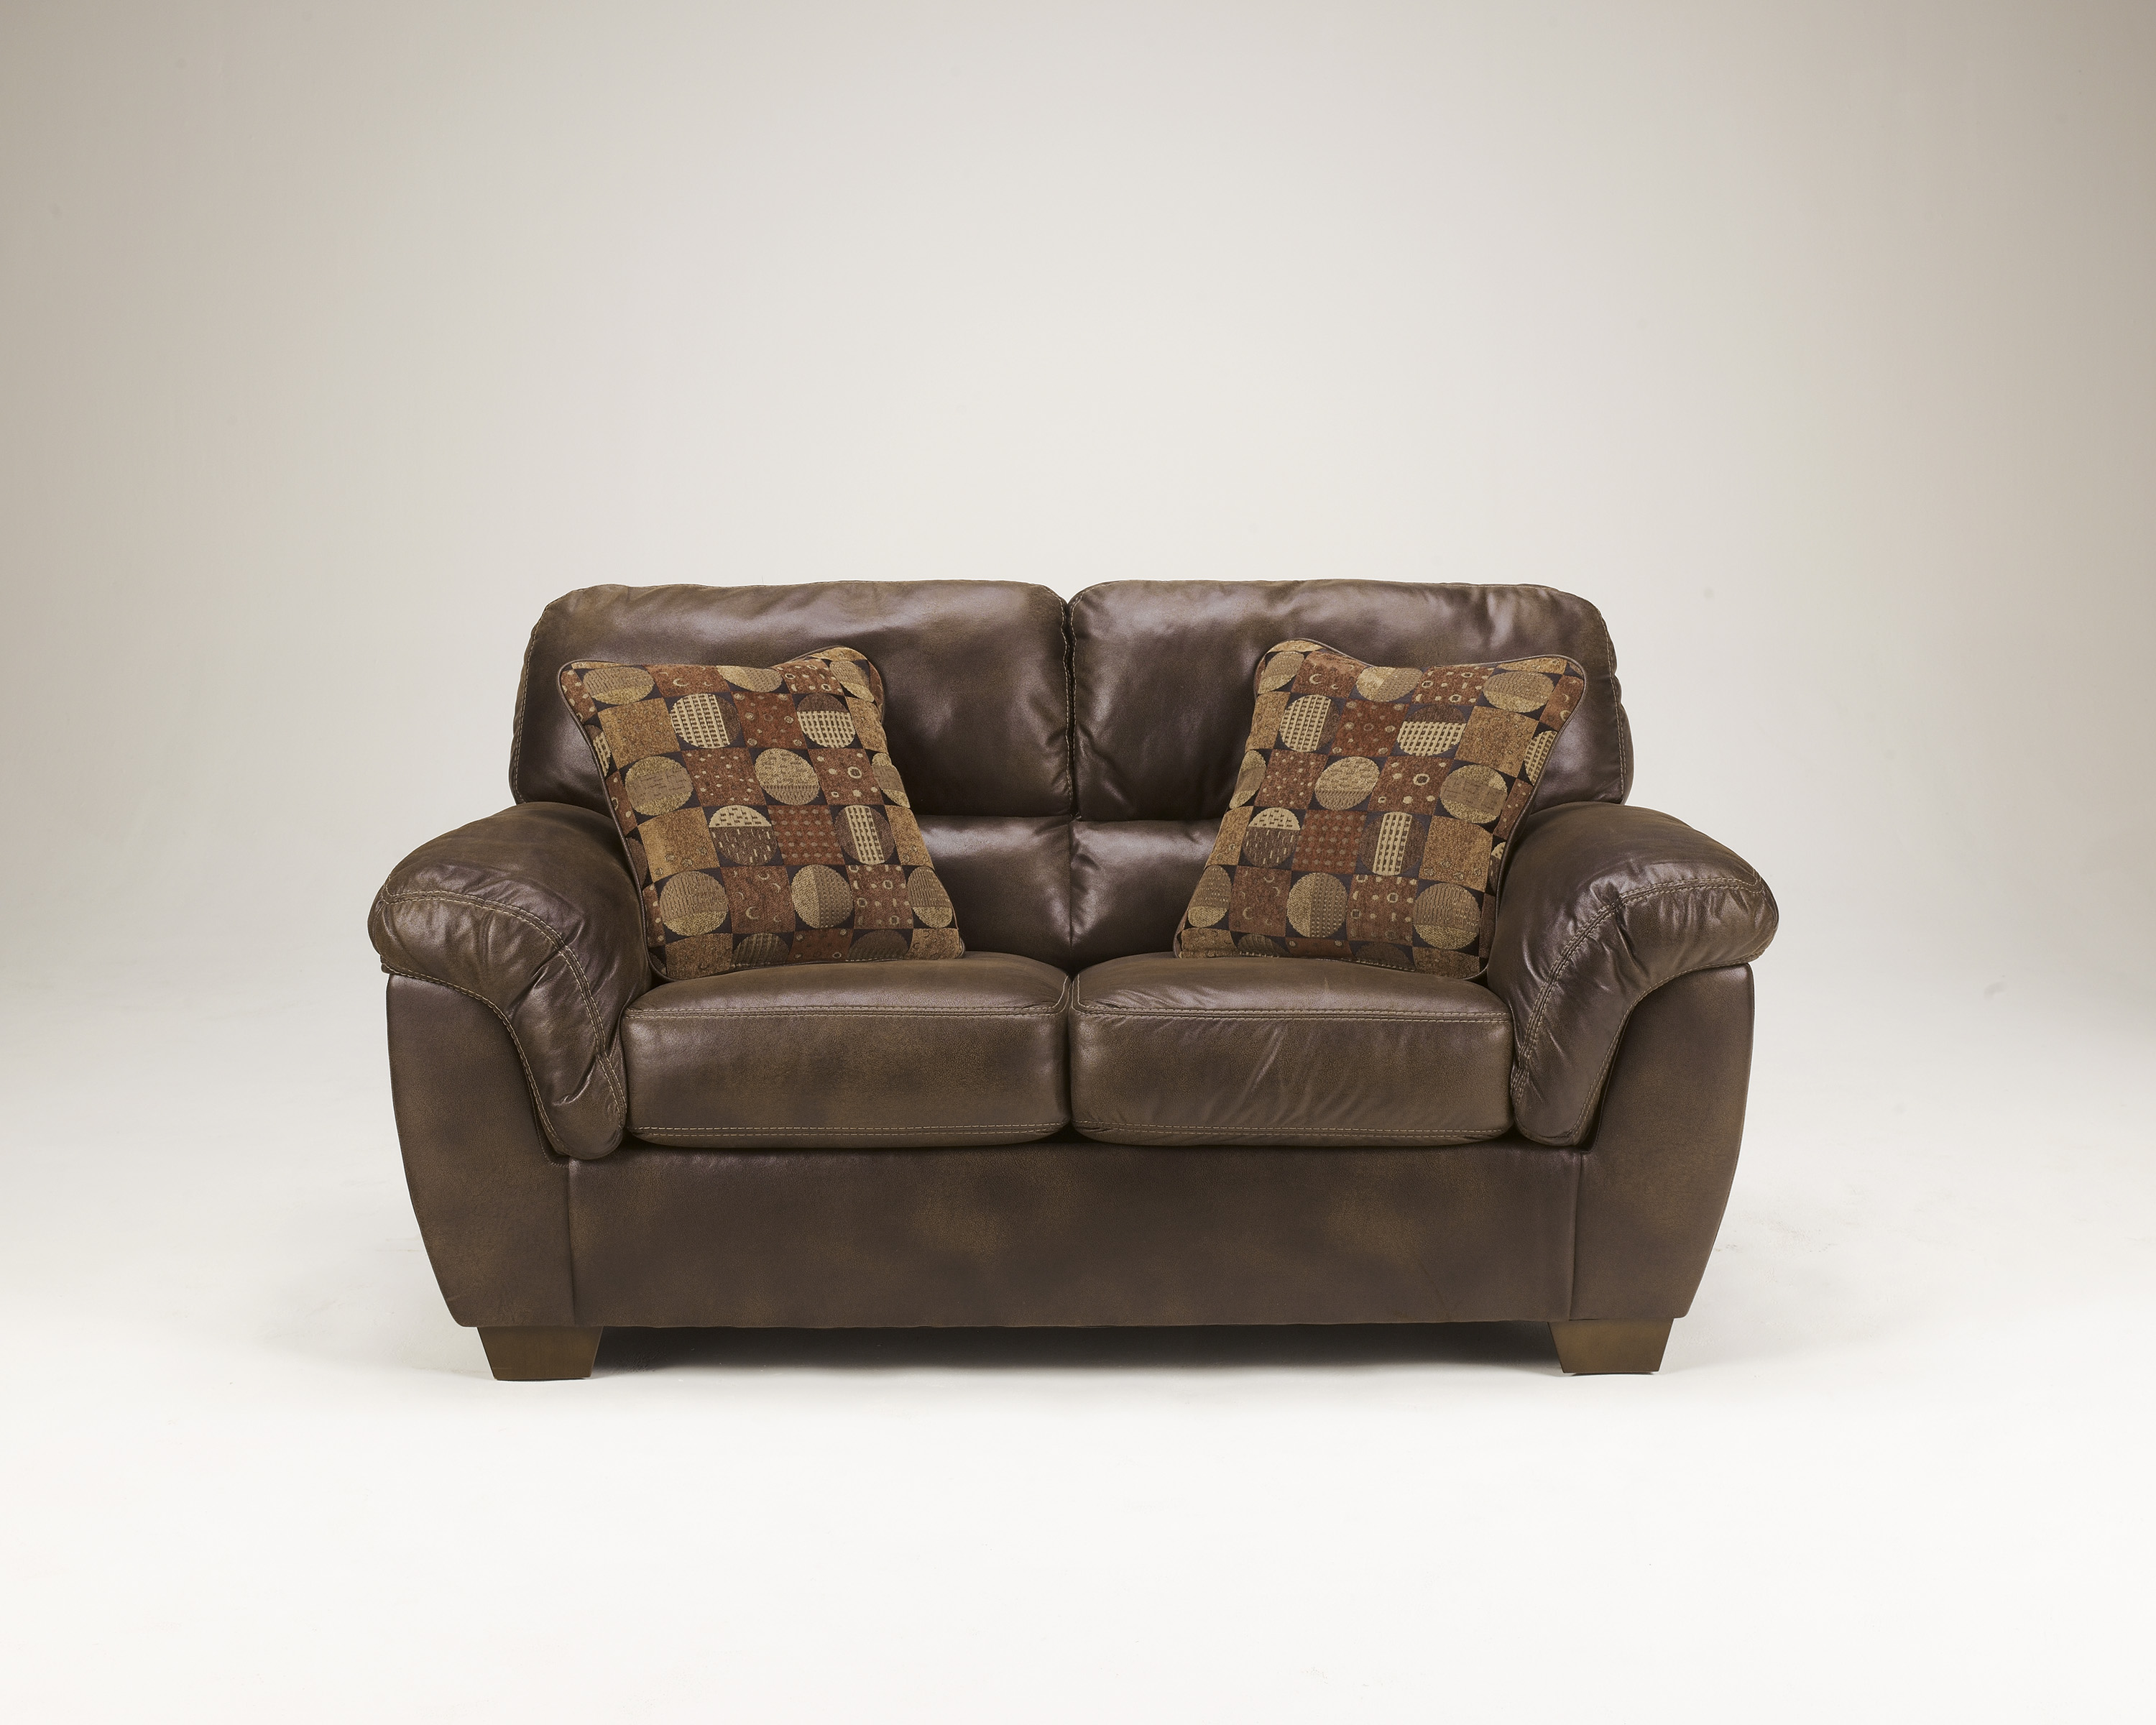 sofa loveseat sets sale set online order amazon walnut and clearance